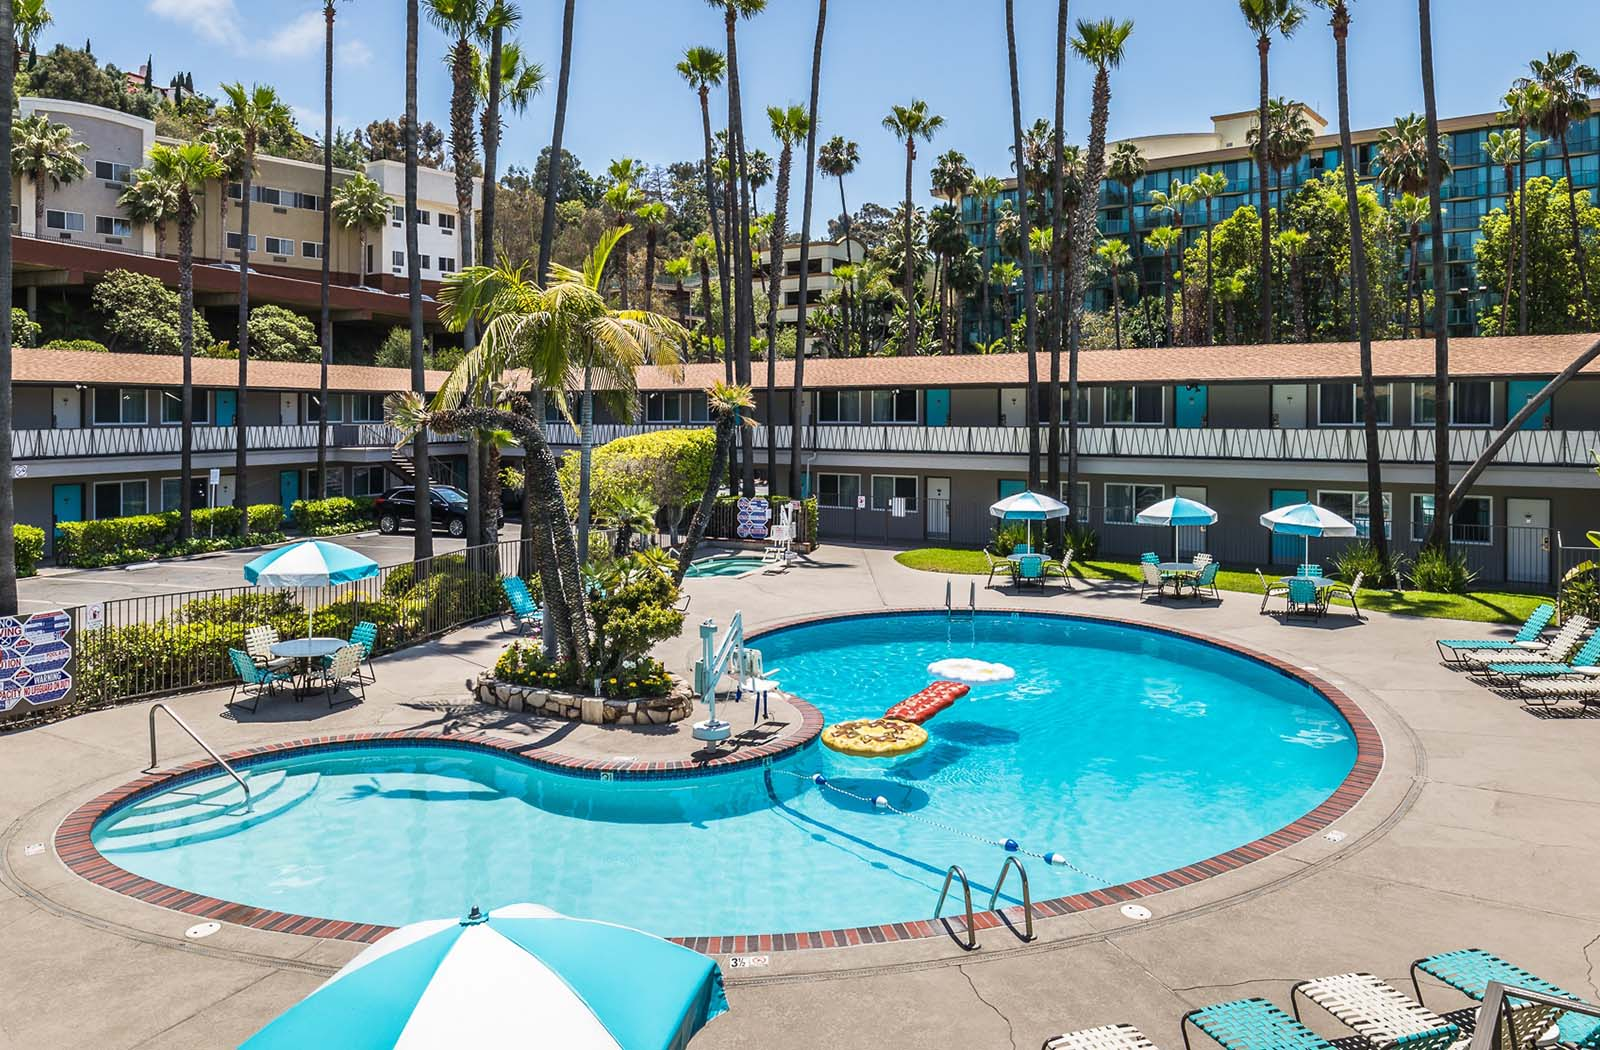 San Diego Hotel with Pool